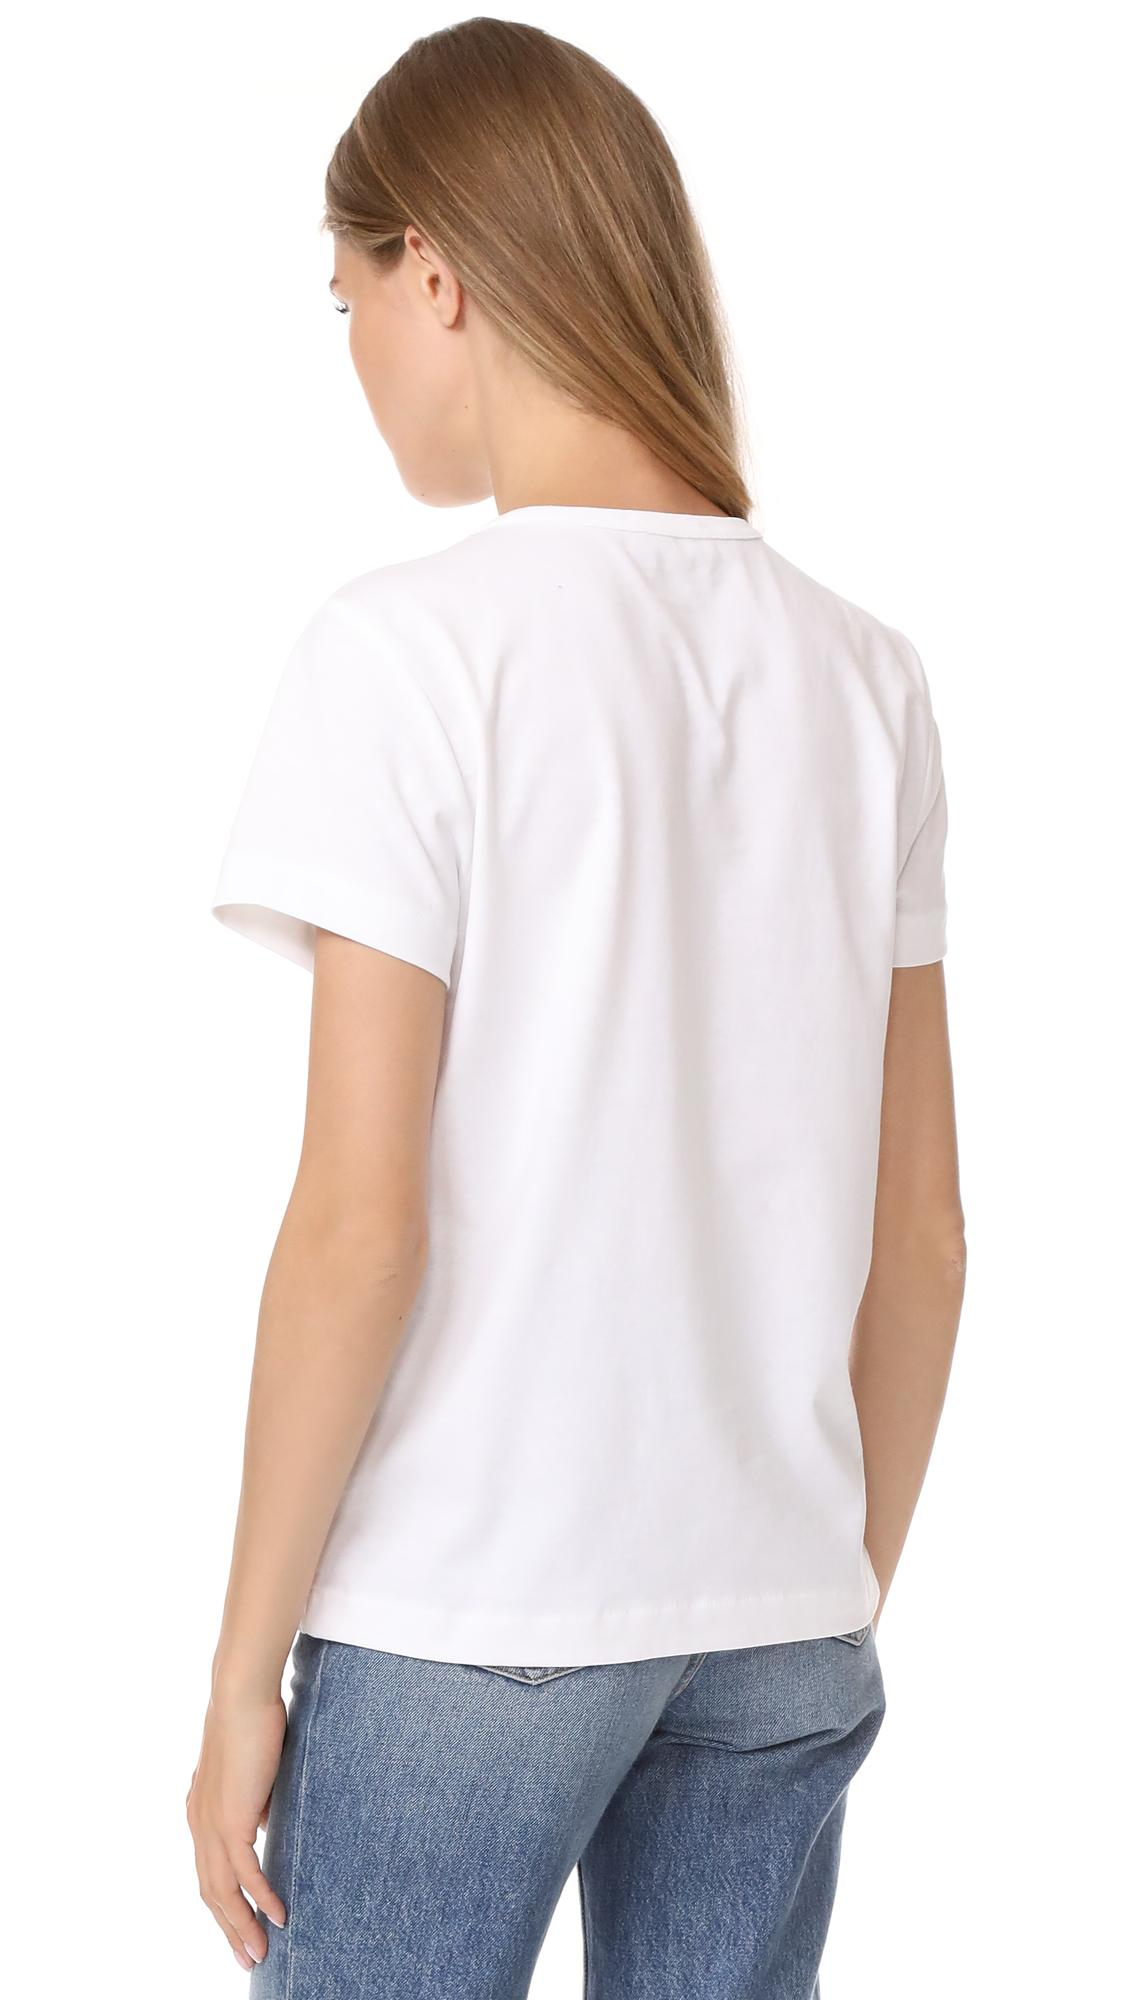 Lyst a p c apc hiver 1987 t shirt in white for Apc white t shirt